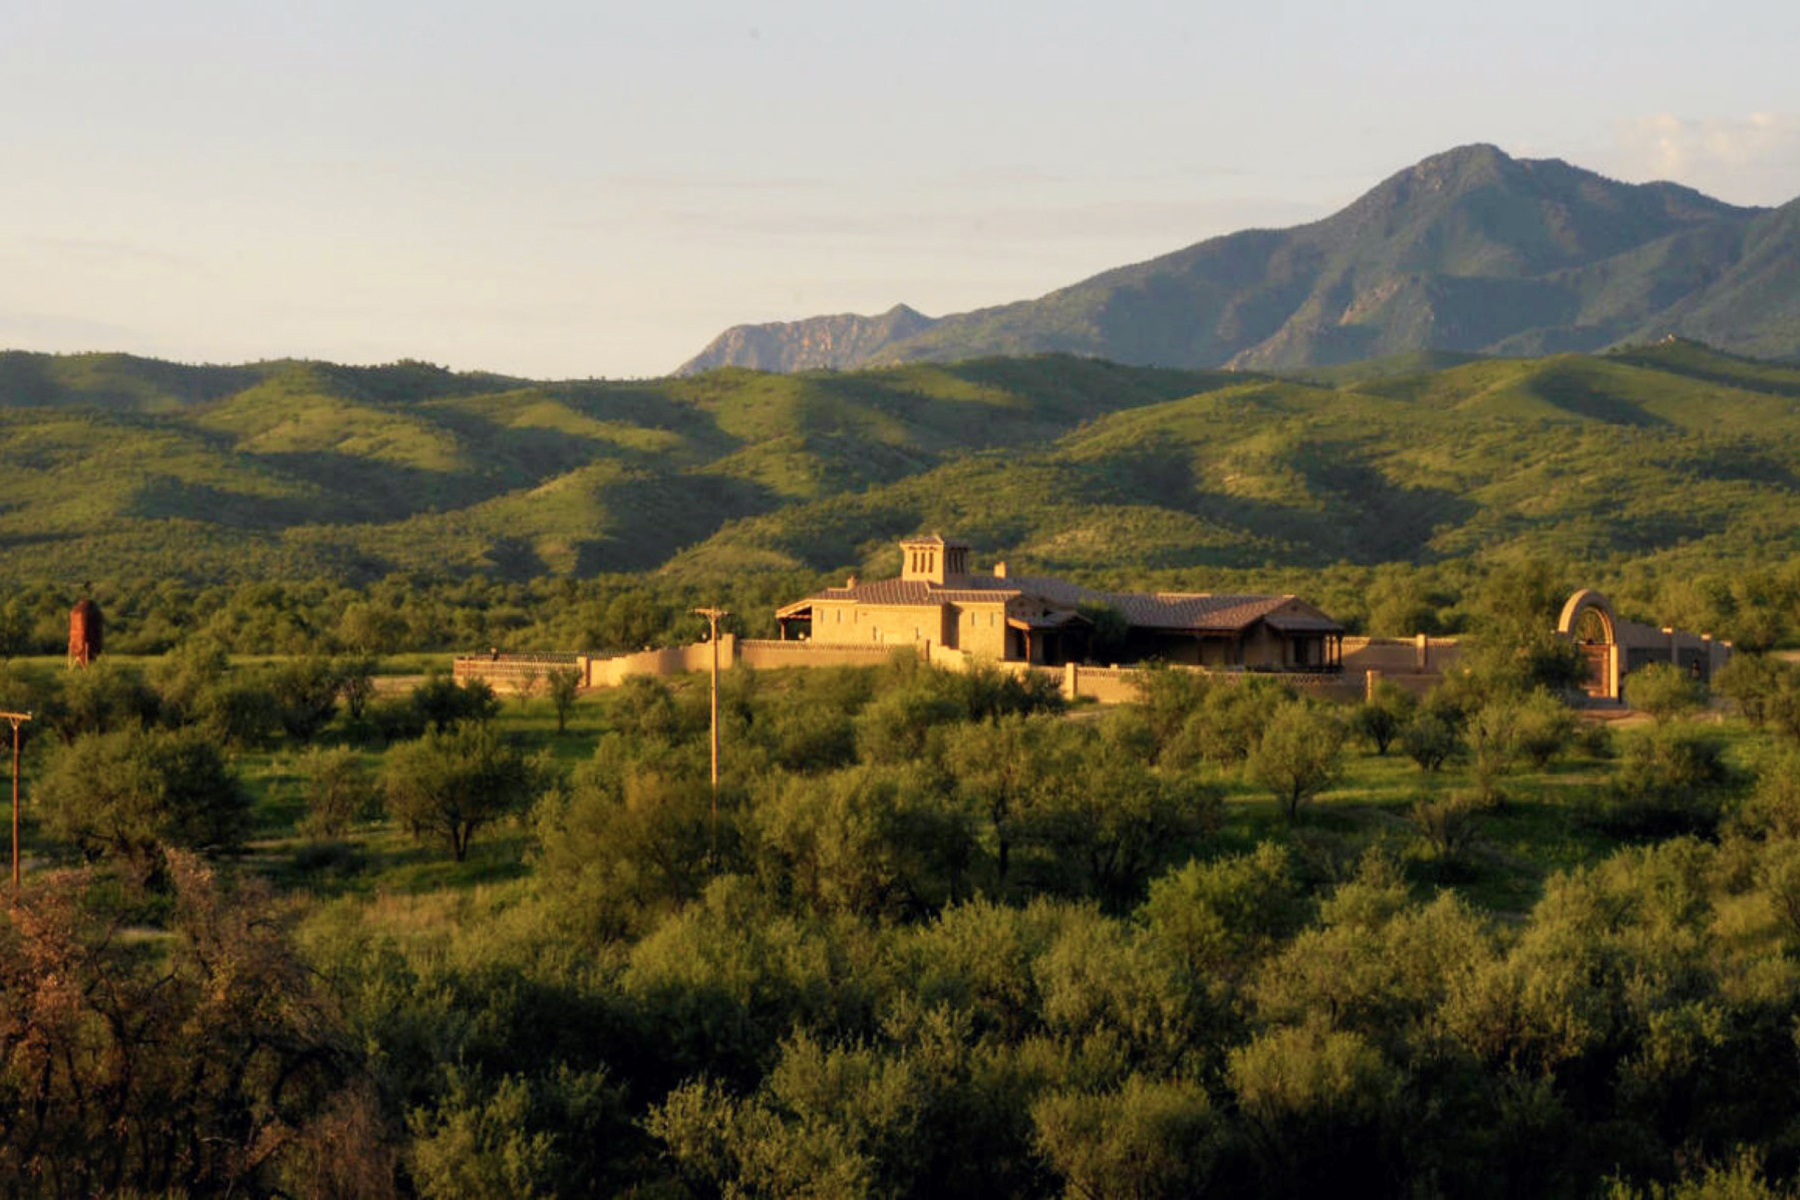 独户住宅 为 销售 在 Magnificent Private Western Ranch Home On 36 Acres In Southern Arizona 32 De Padre Court Nogales, 亚利桑那州 85621 美国